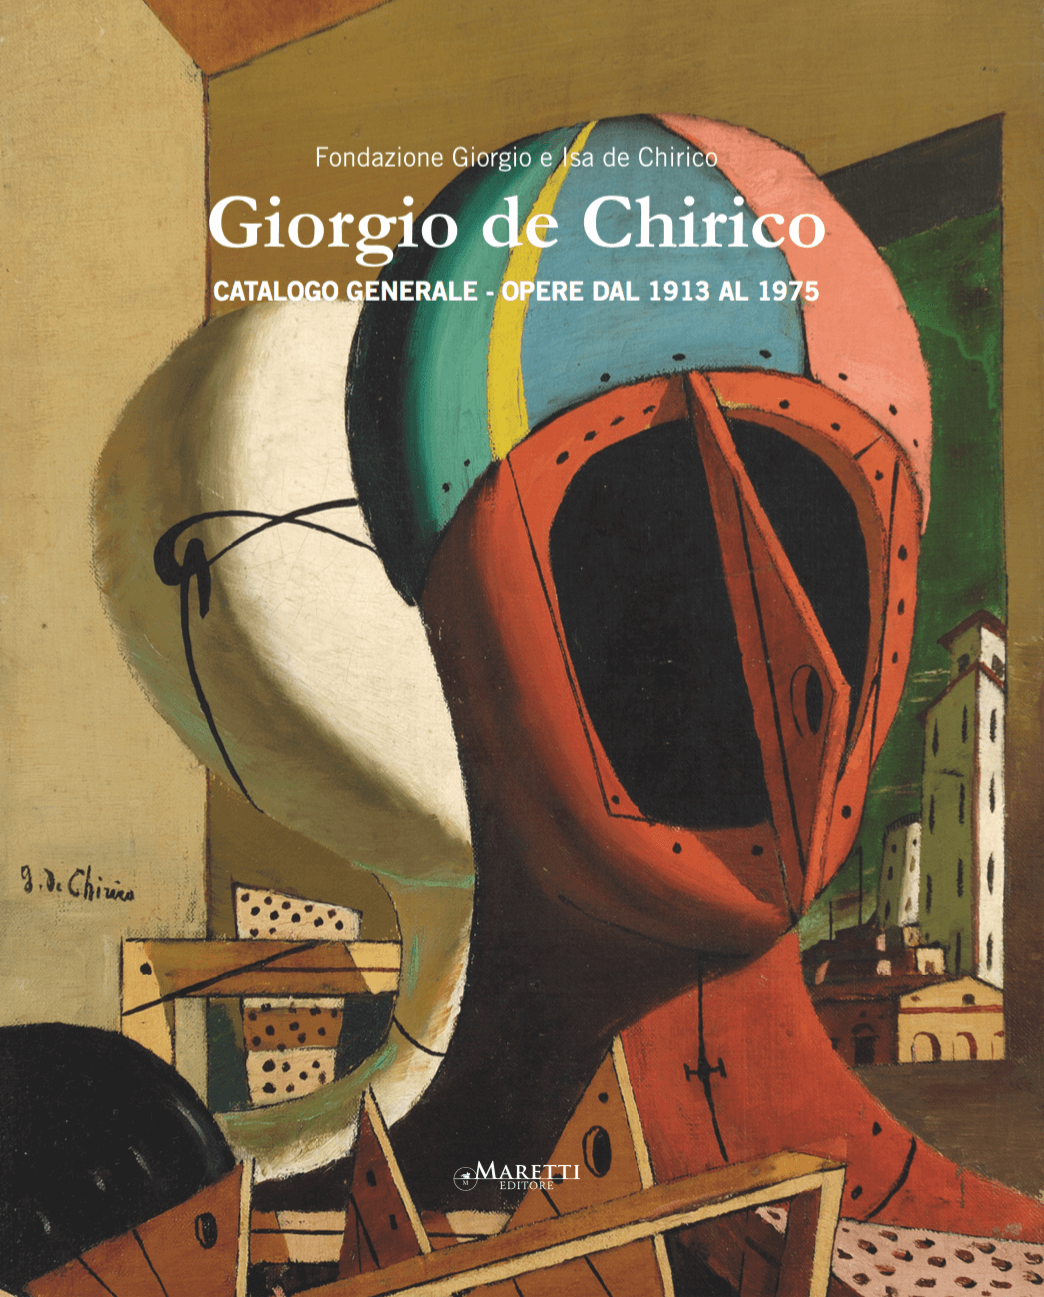 Giorgio de Chirico – Catalogue of Works vol. 4 (1913-1975)